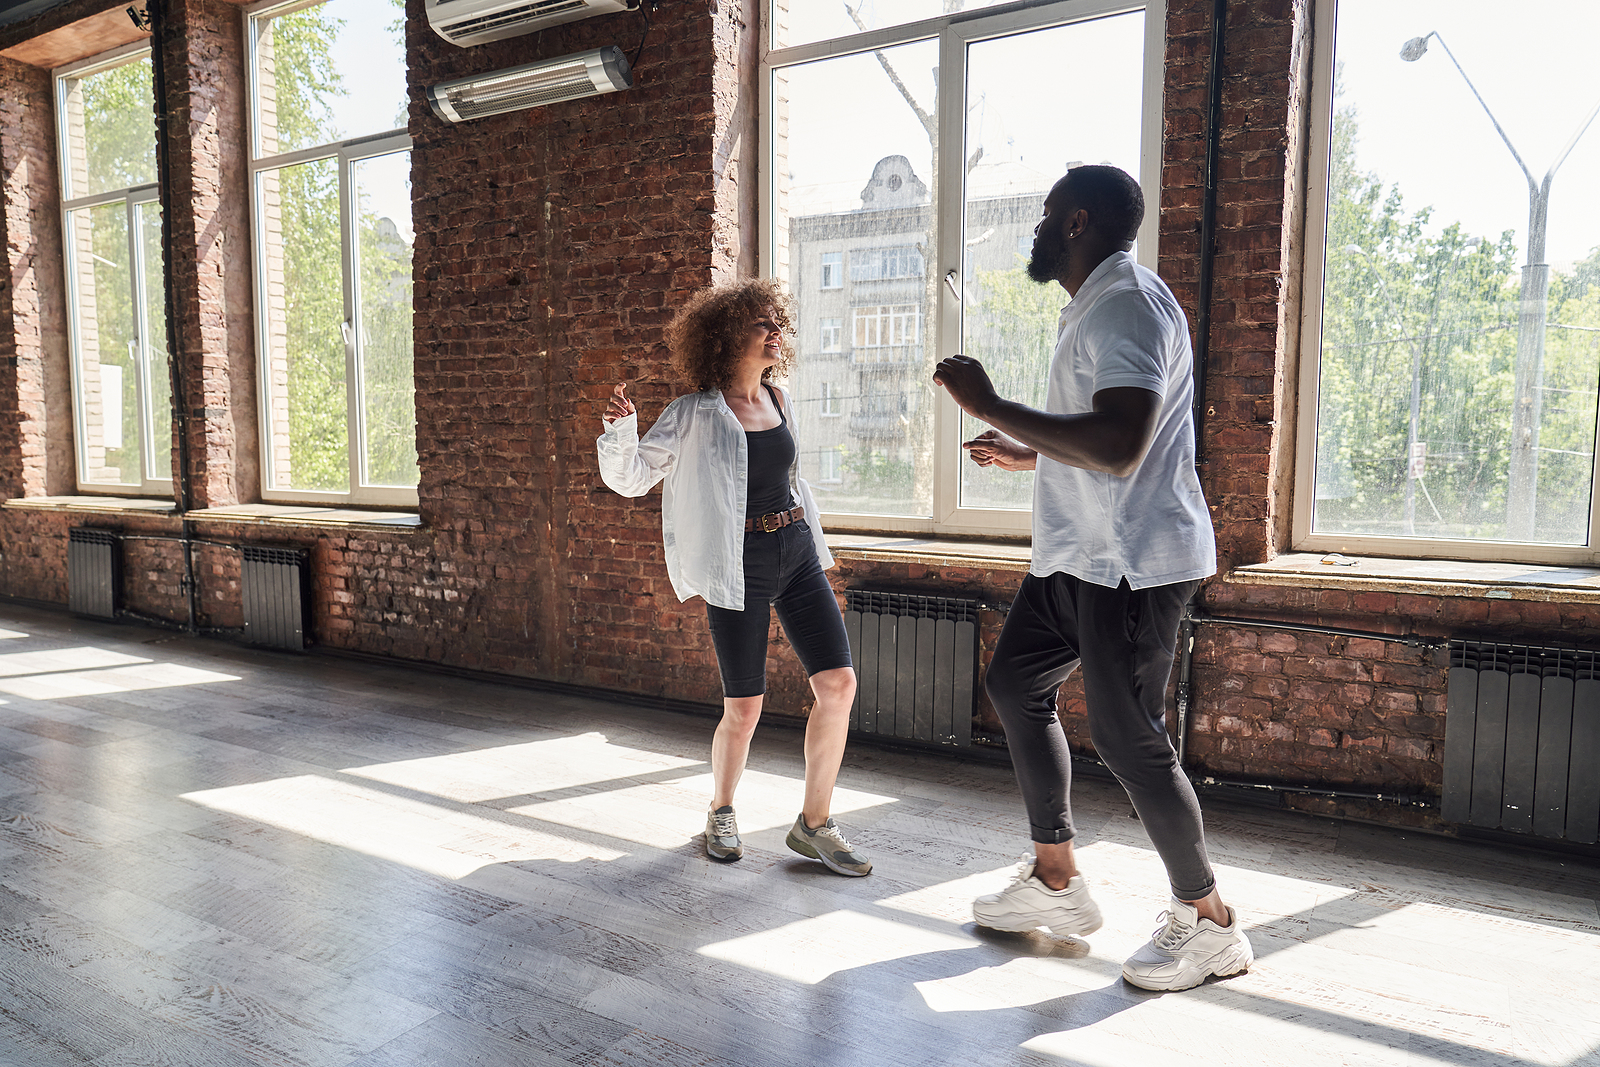 Photo of young hip black couple inside a brick room with open windows dancing together smiling.